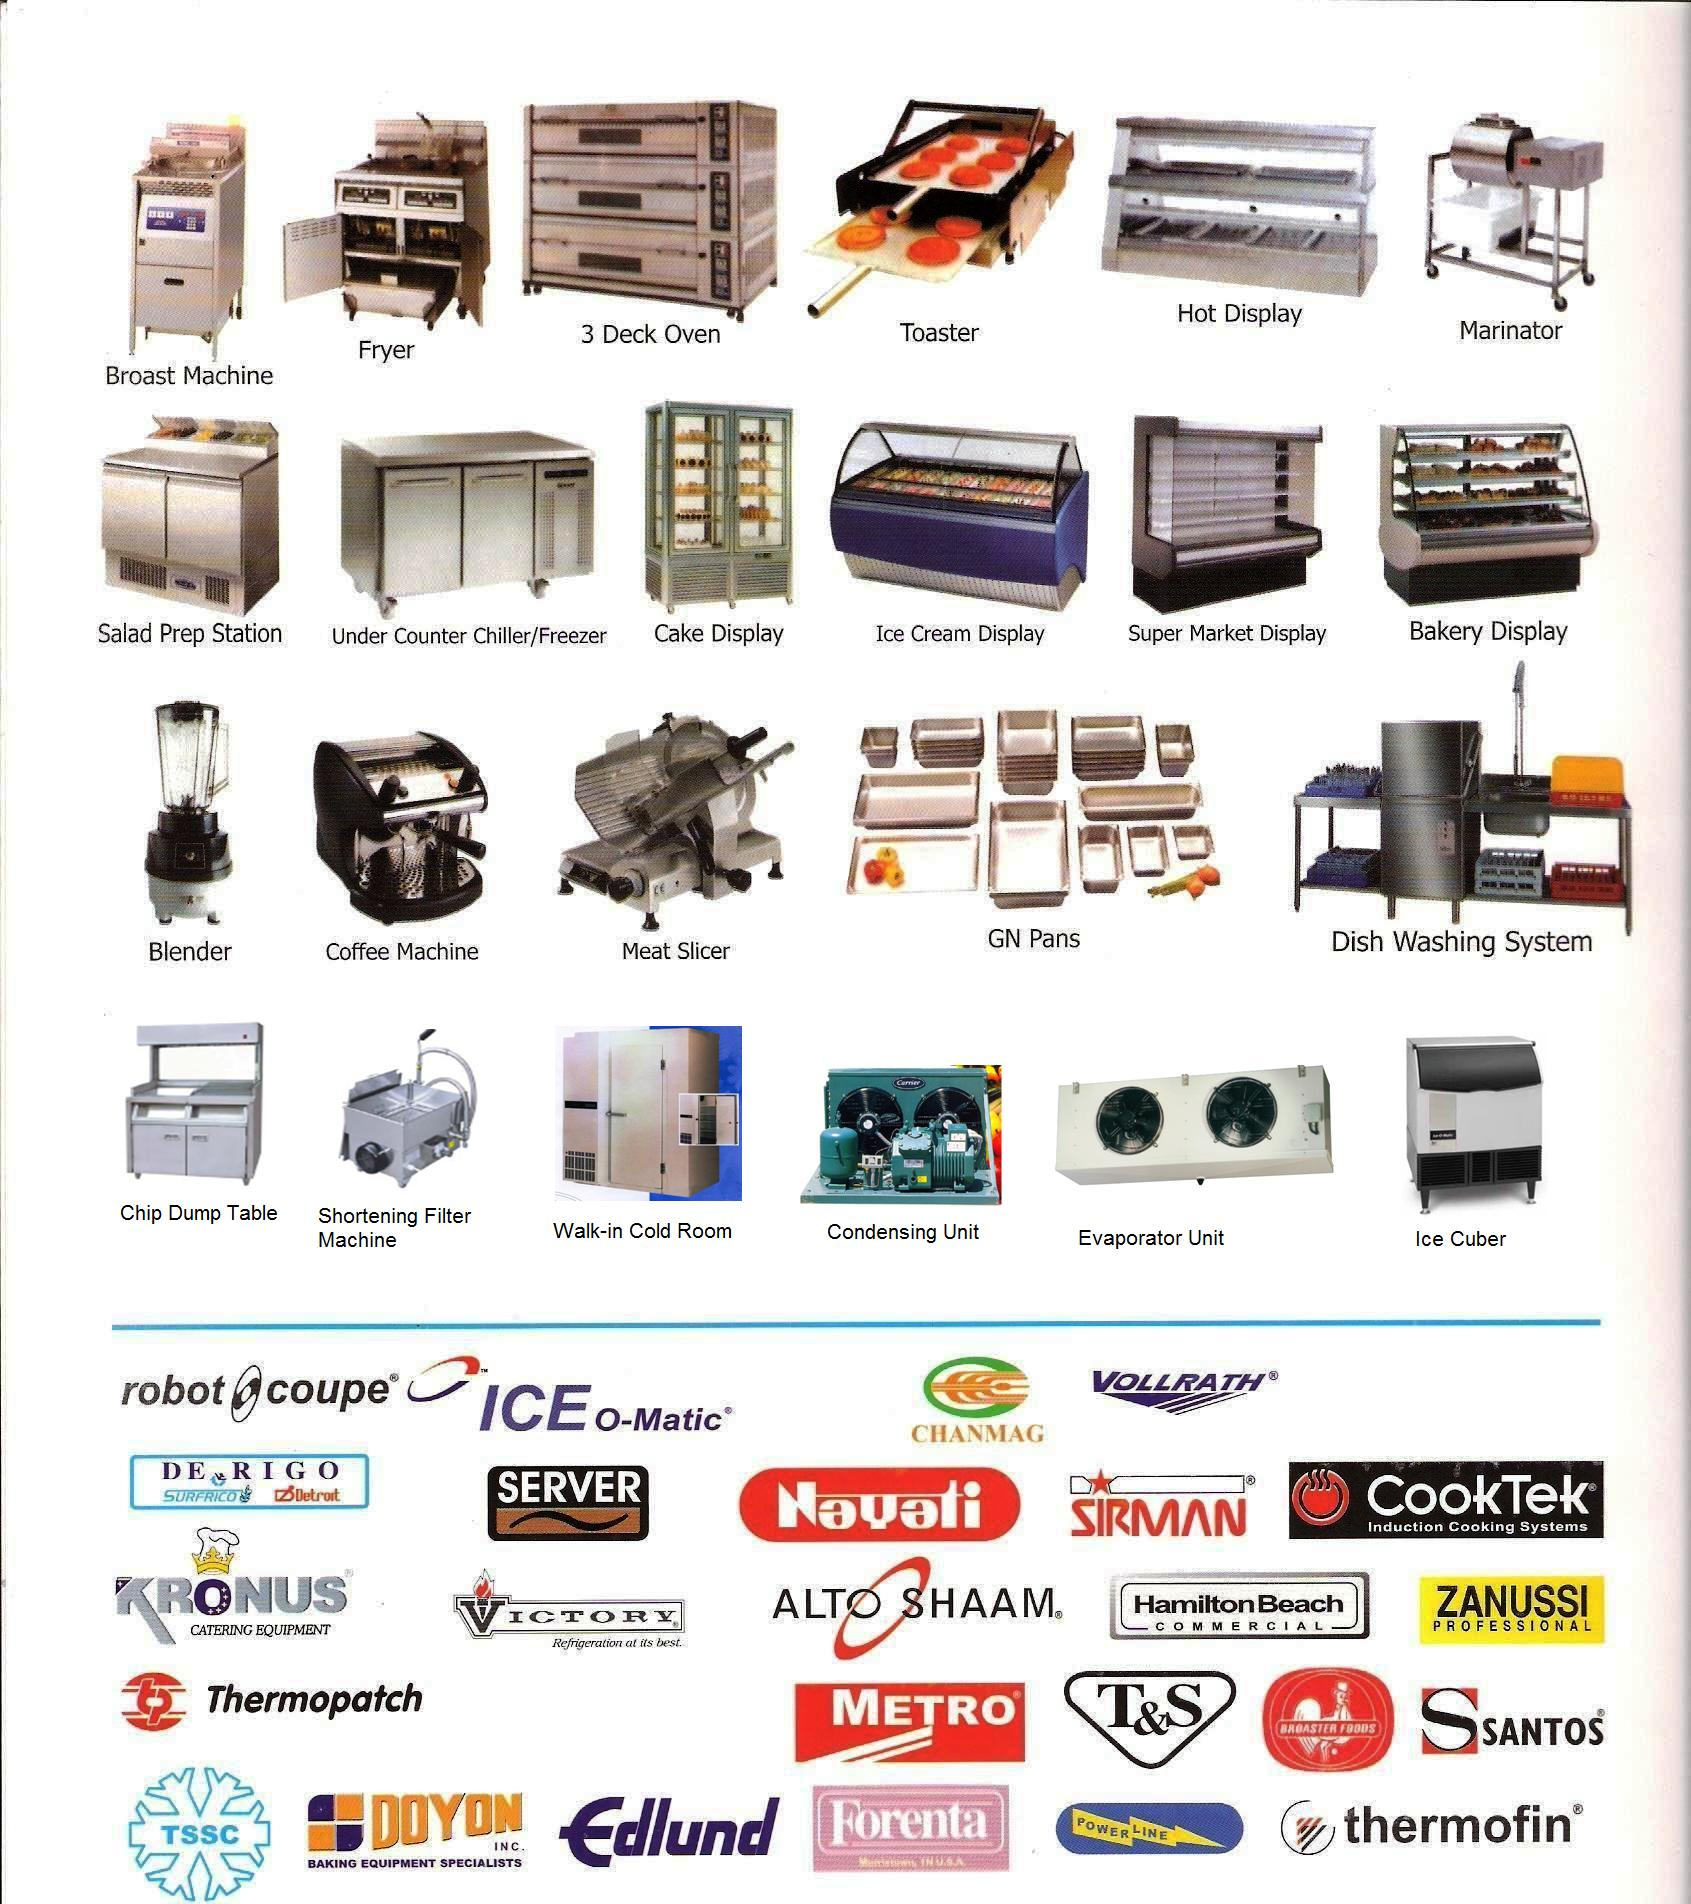 Kitchen Tools And Utensils Their Names Kitchen Design Junjian Kitchen  Appliances Refrigeration Guangzhou Junjian Kitchen .